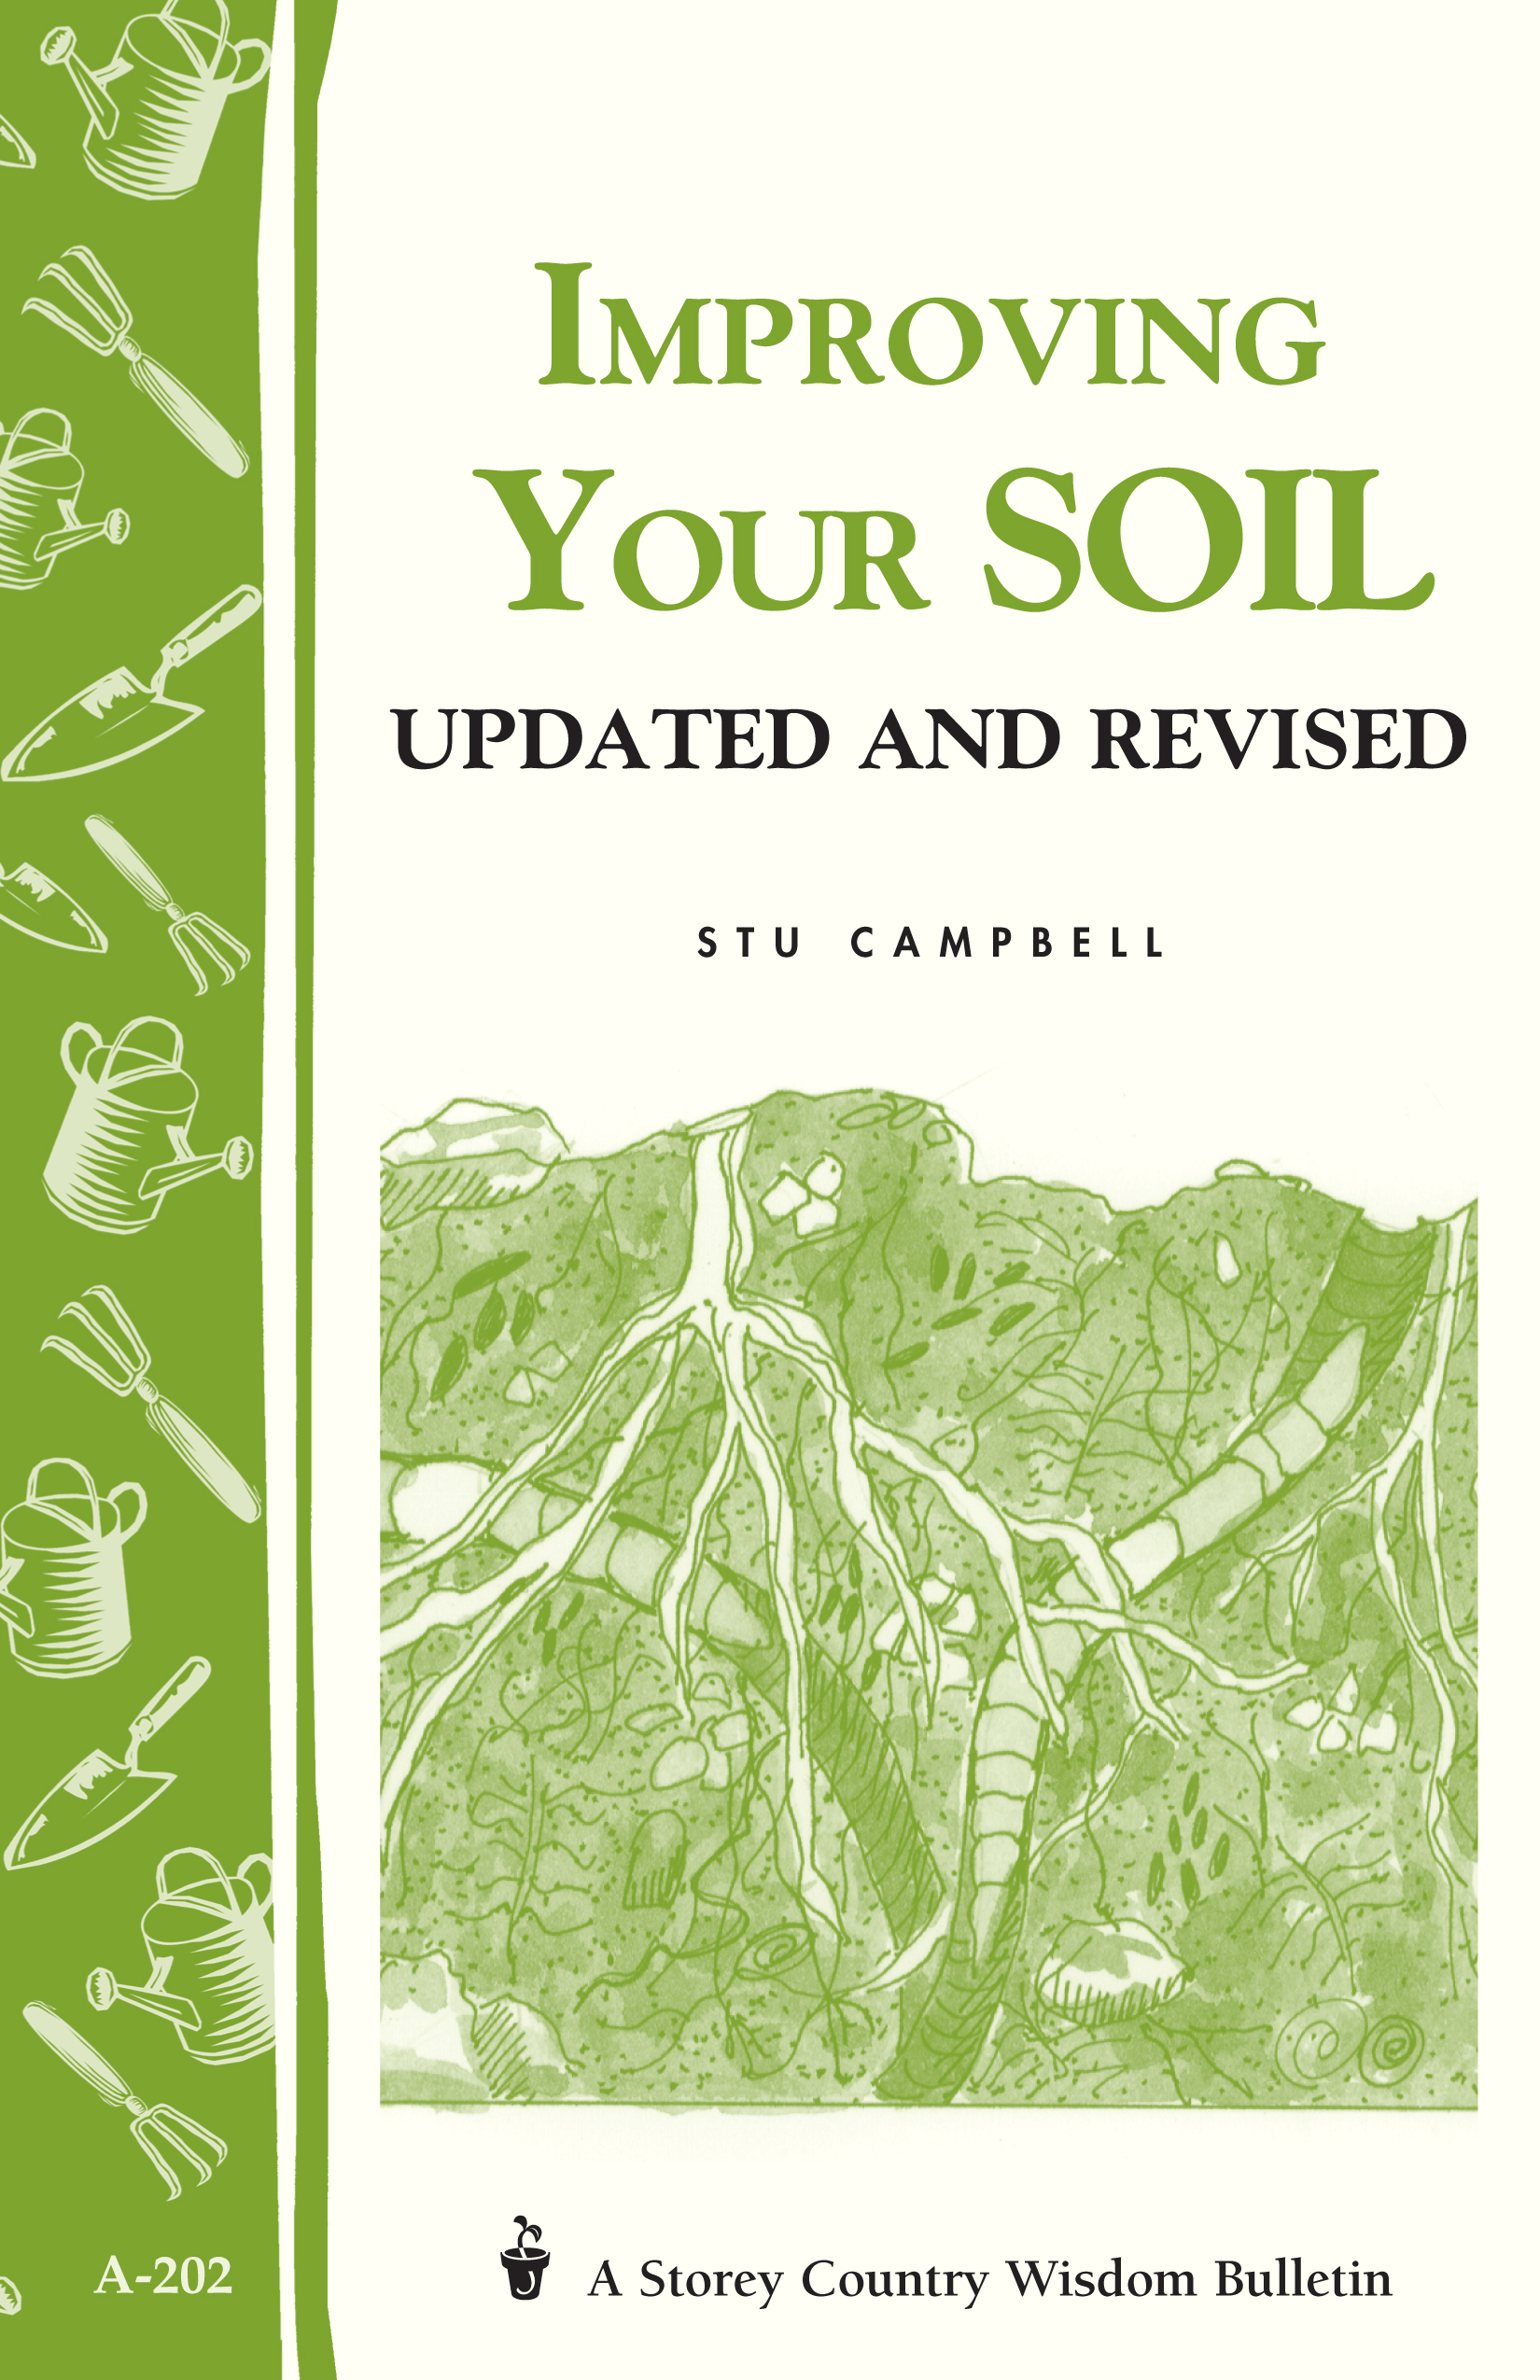 Improving Your Soil Storey's Country Wisdom Bulletin A-202 - Stu Campbell